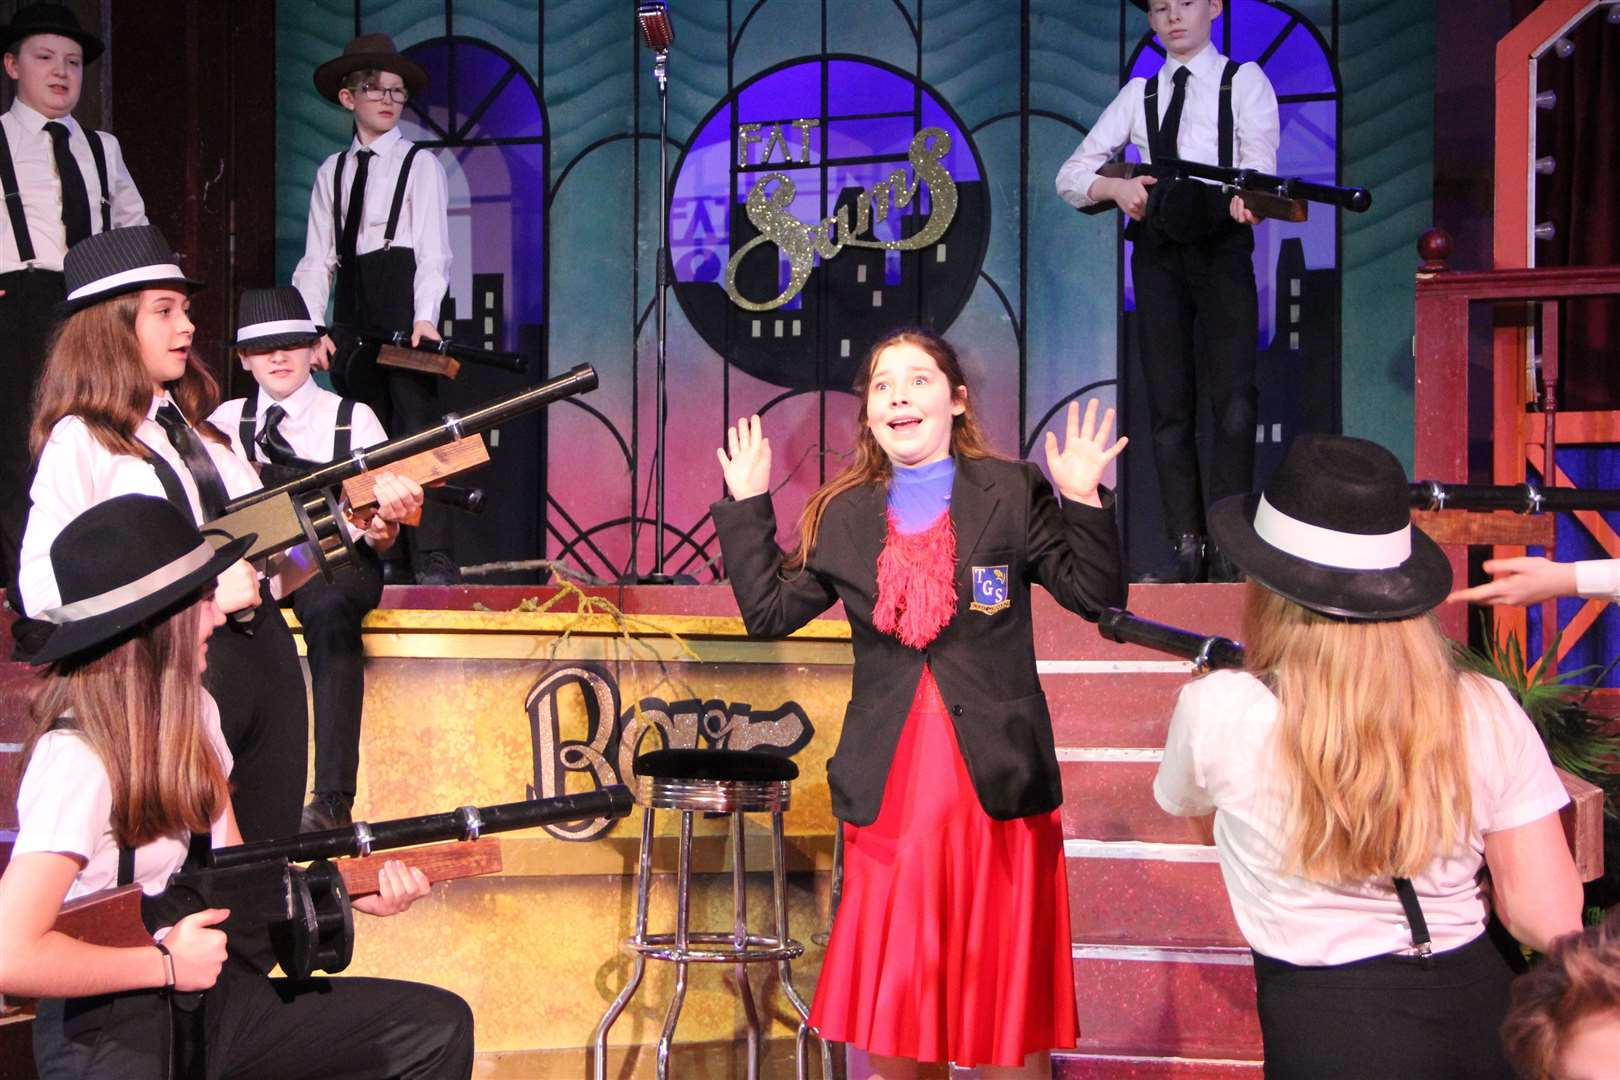 Bugsy Malone production at Thomas Gainsborough. (31247962)